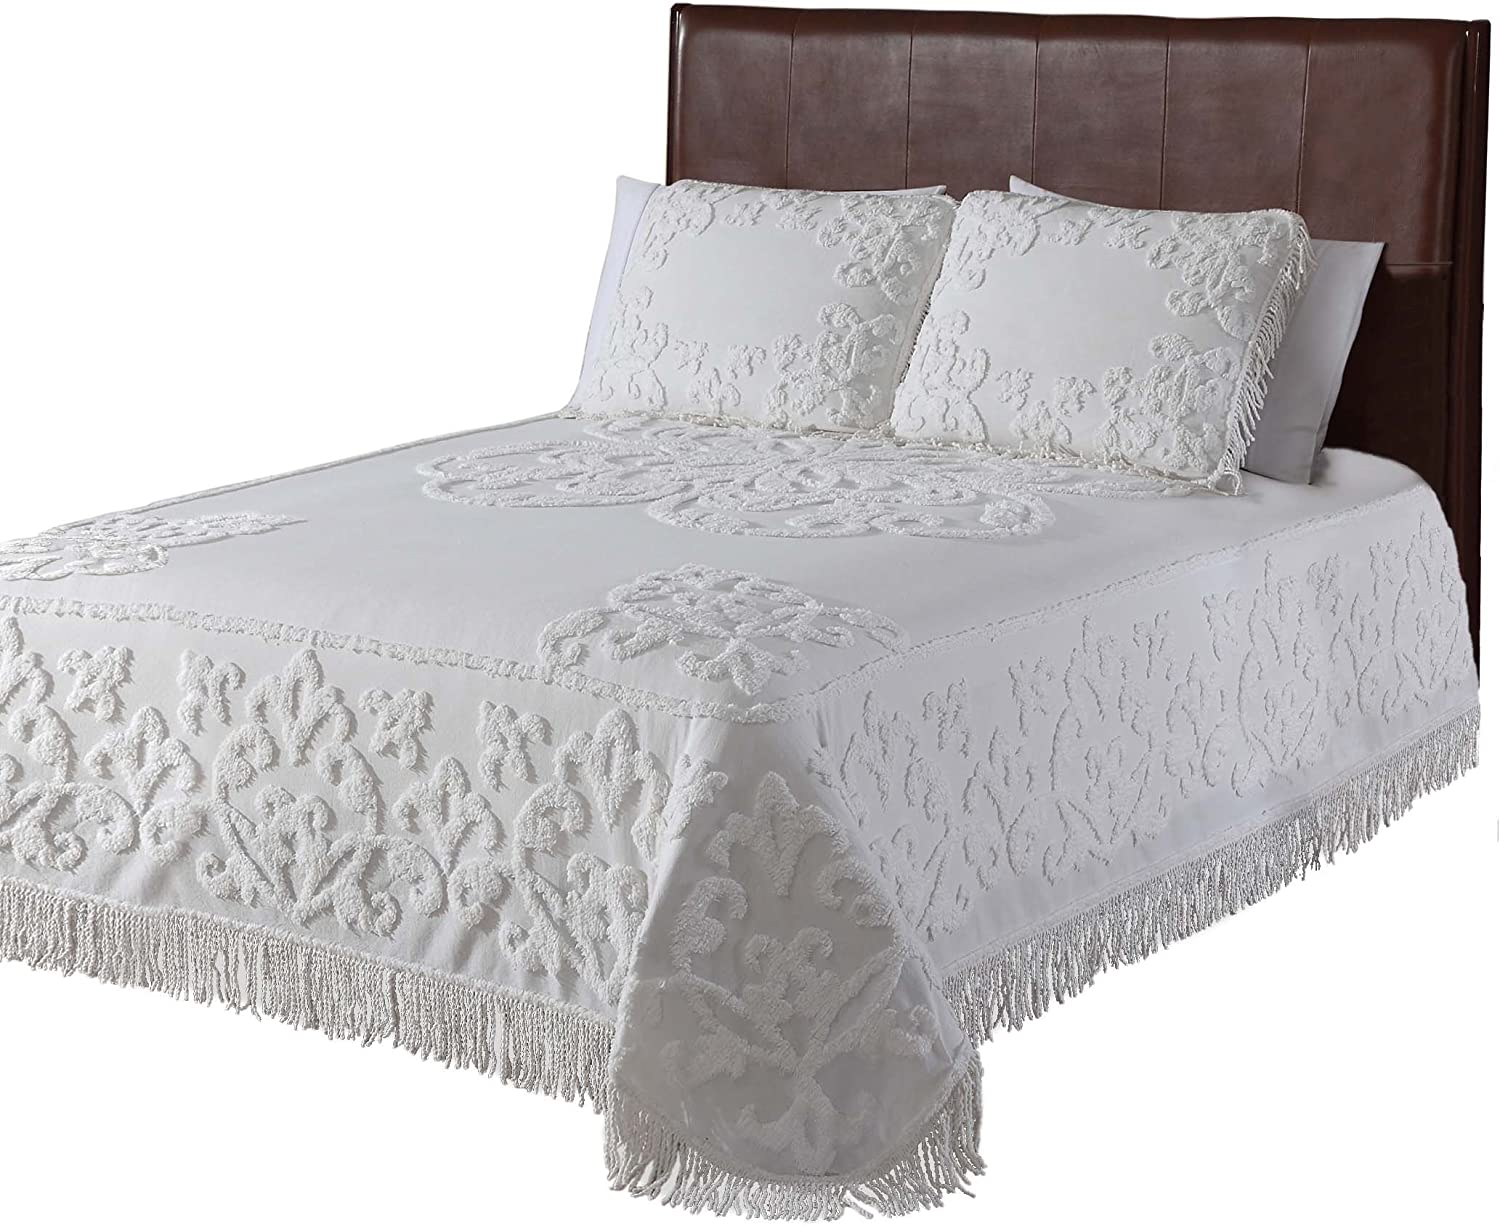 Beatrice Home Fashions Gayal Chenille Bedspread, King, Ivory